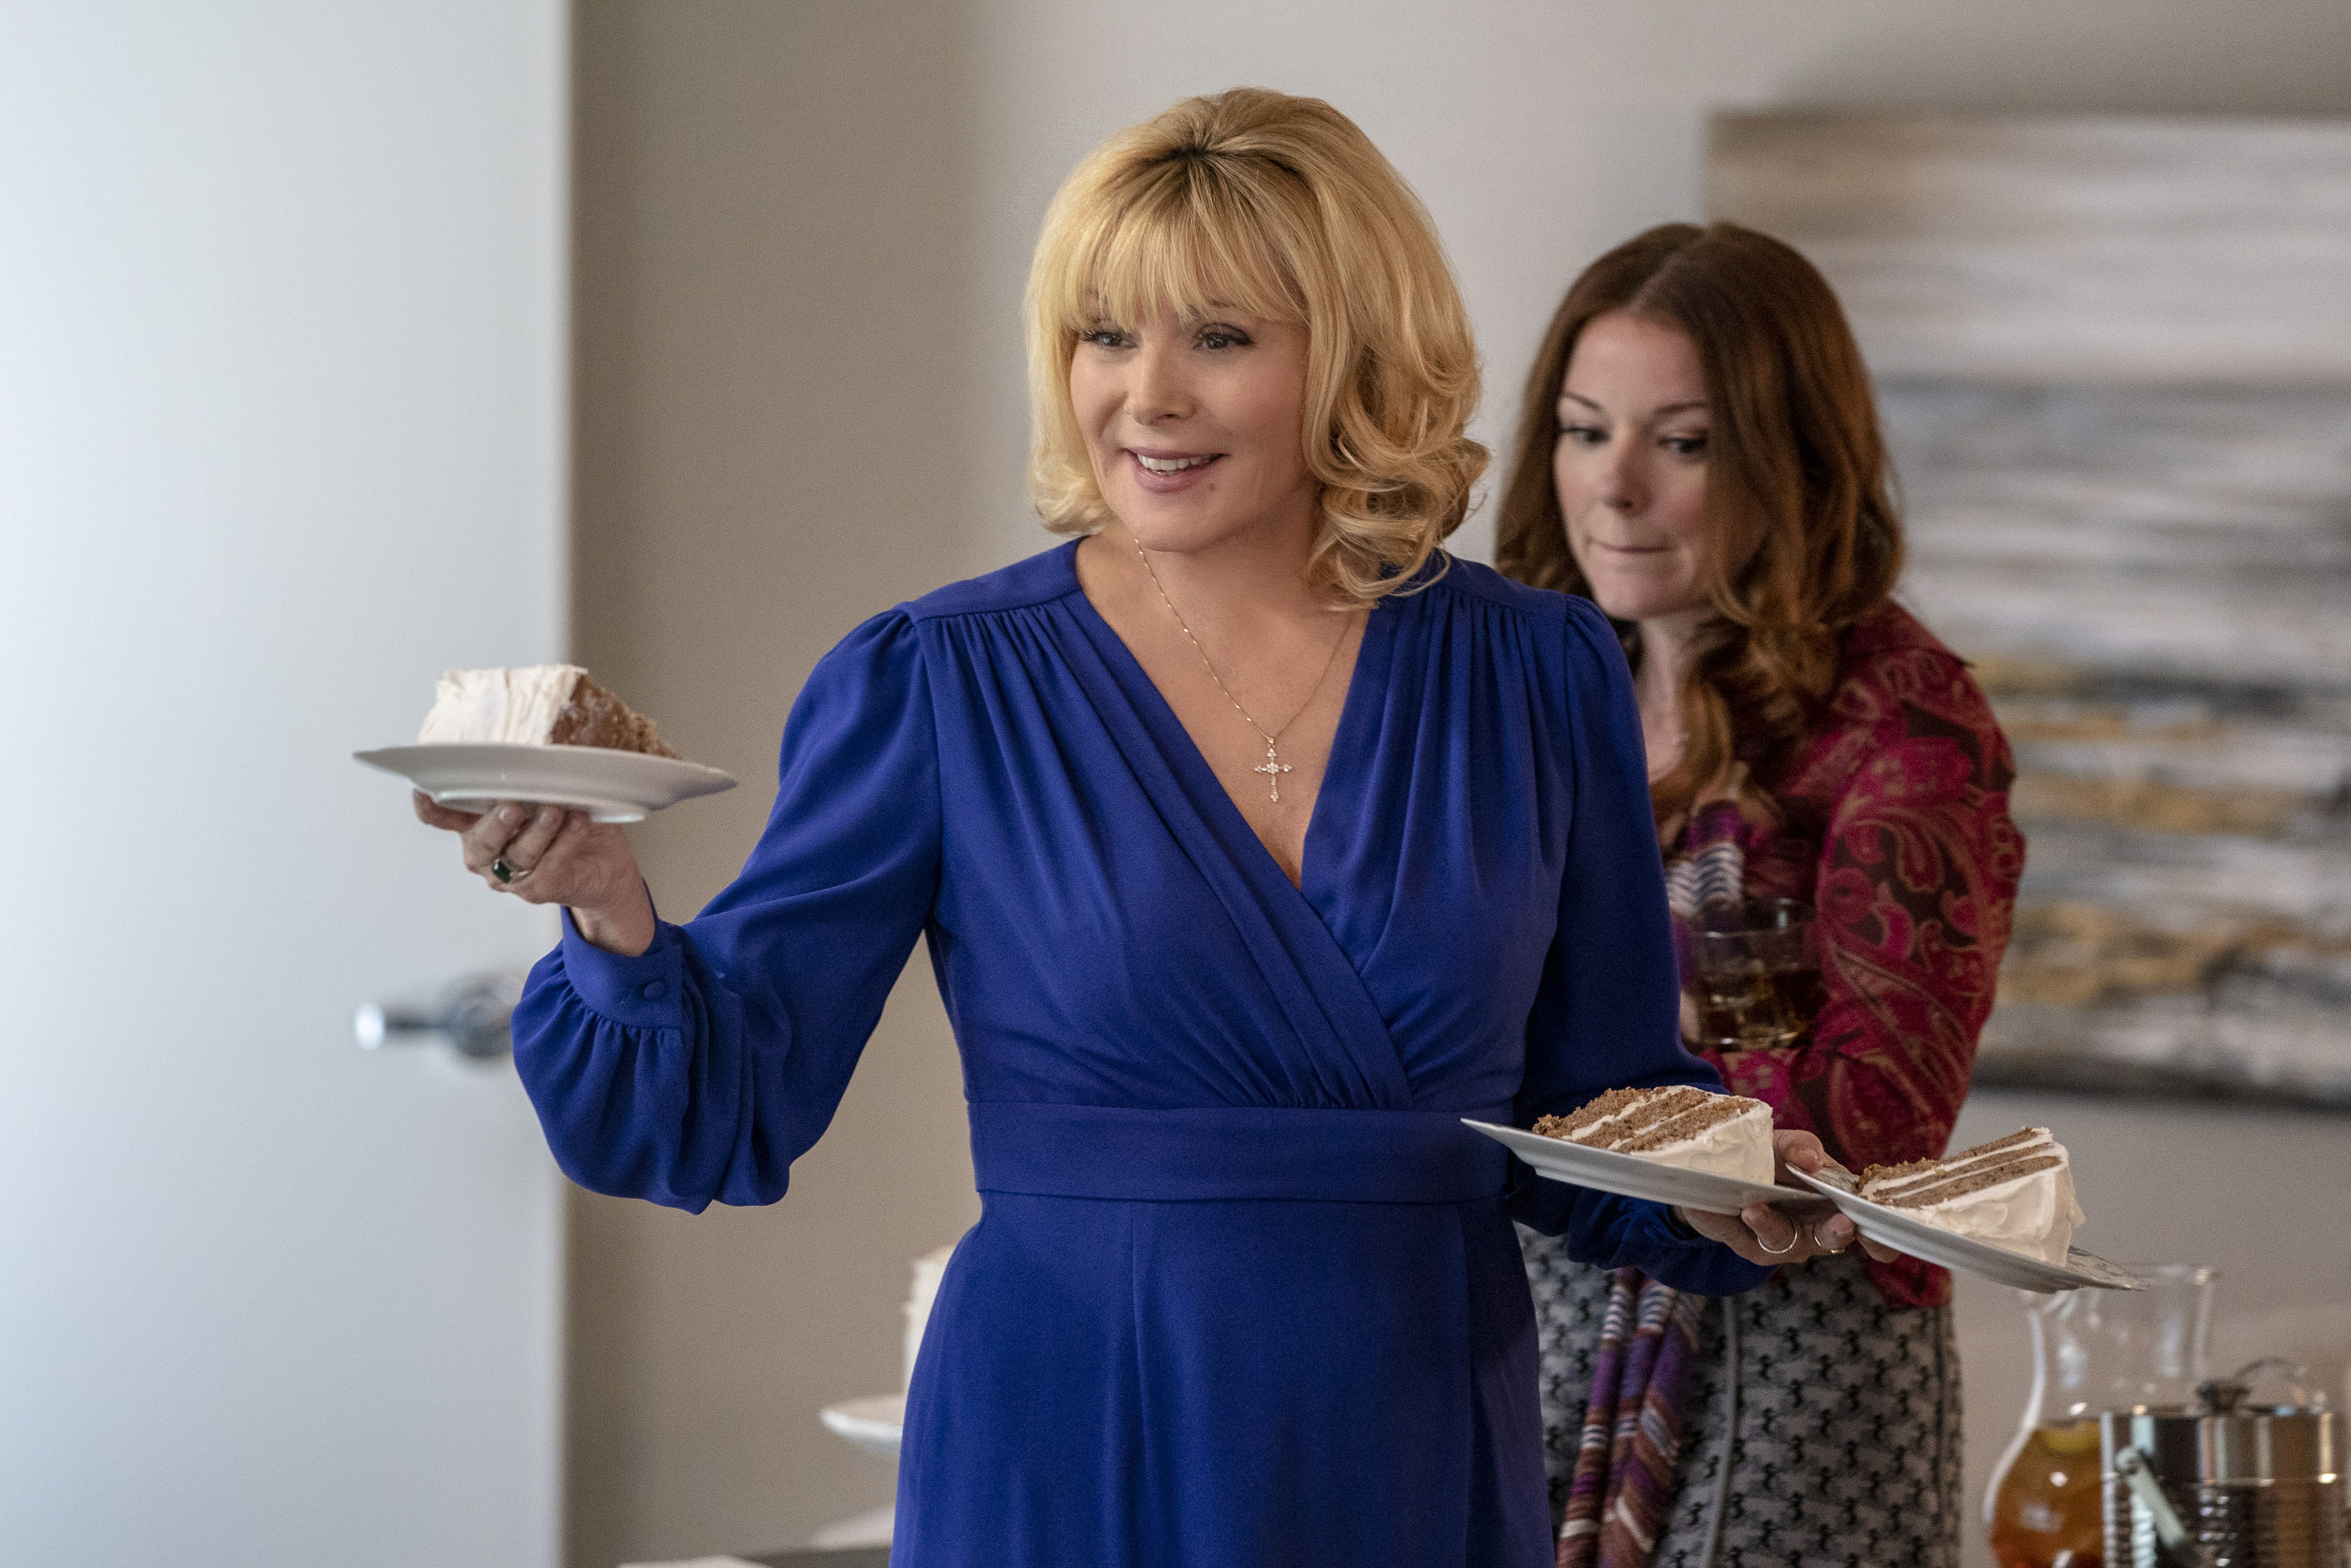 When will Kim Cattrall's new series Filthy Rich premiere on FOX?